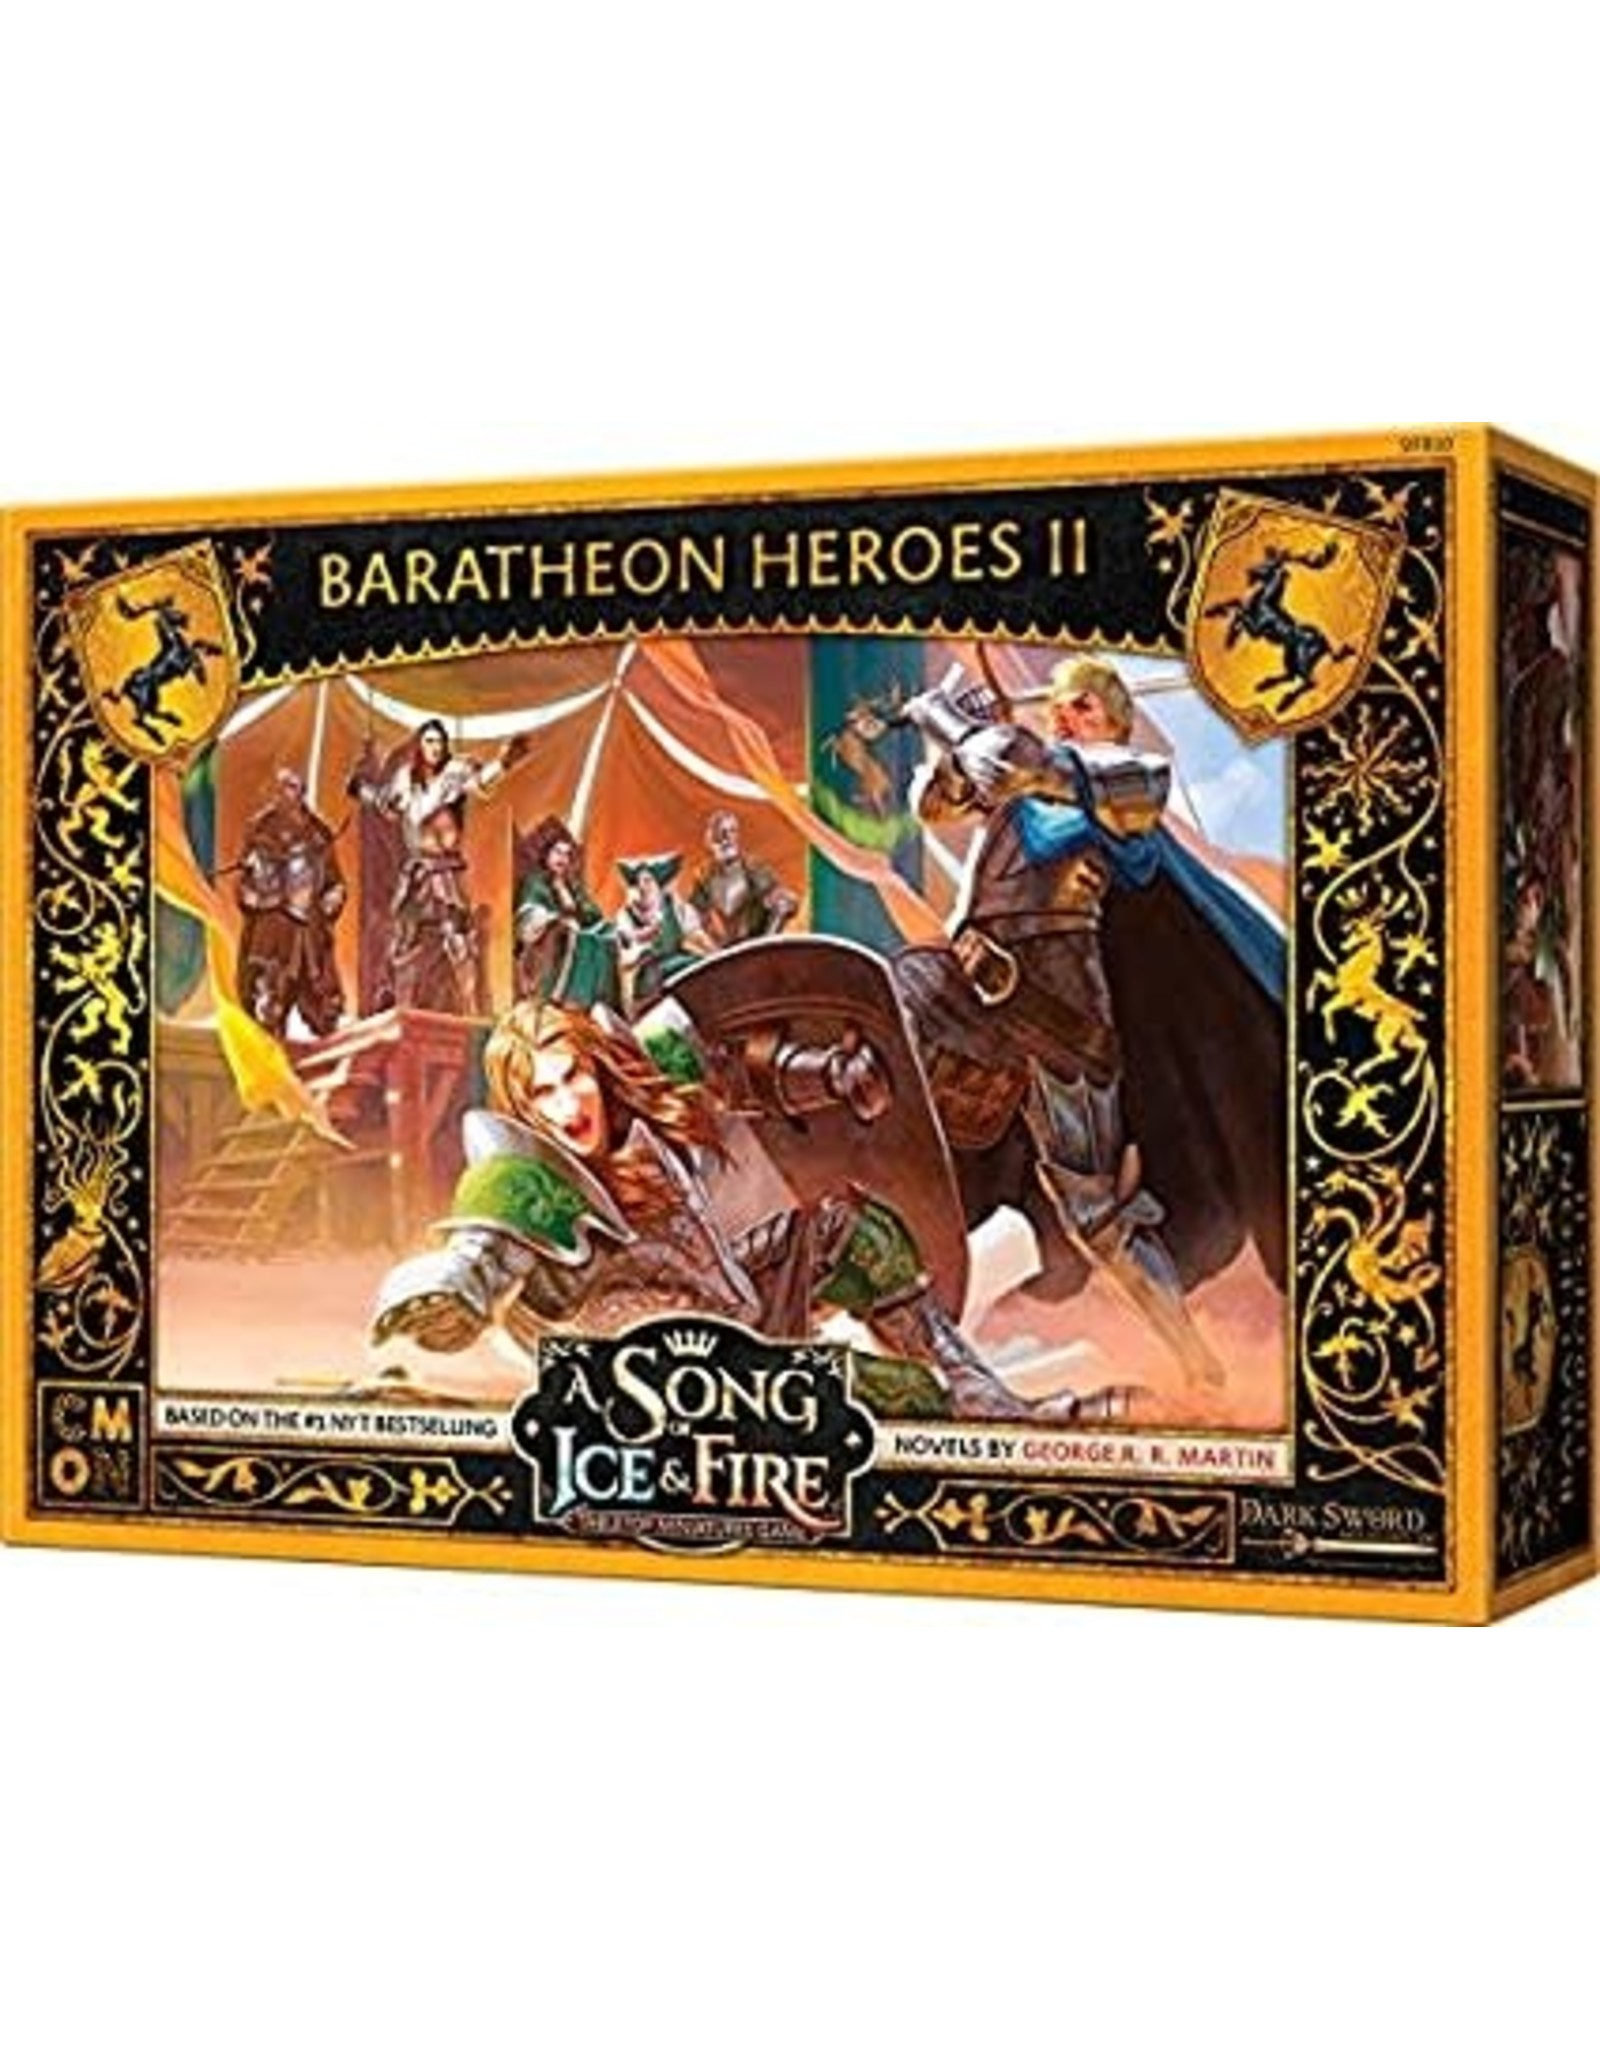 CMON A SONG OF ICE & FIRE: BARATHEON HEROES #2